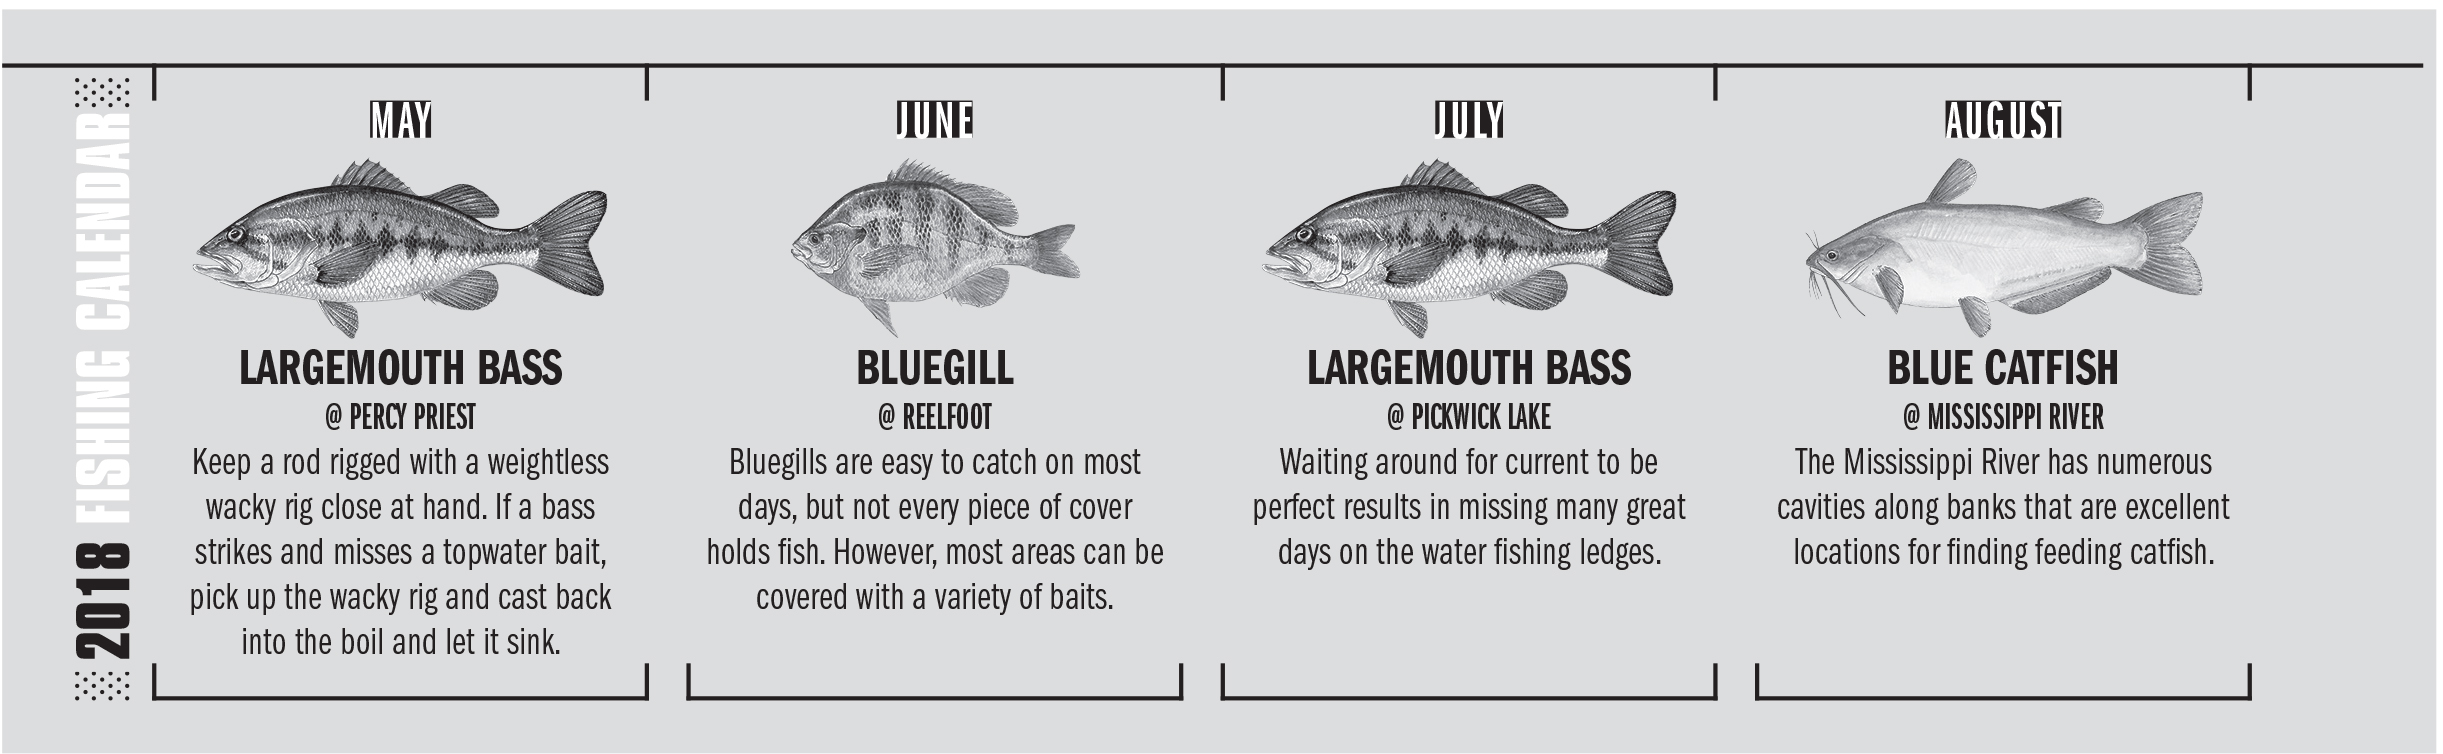 2018 Tennessee Fishing Calendar